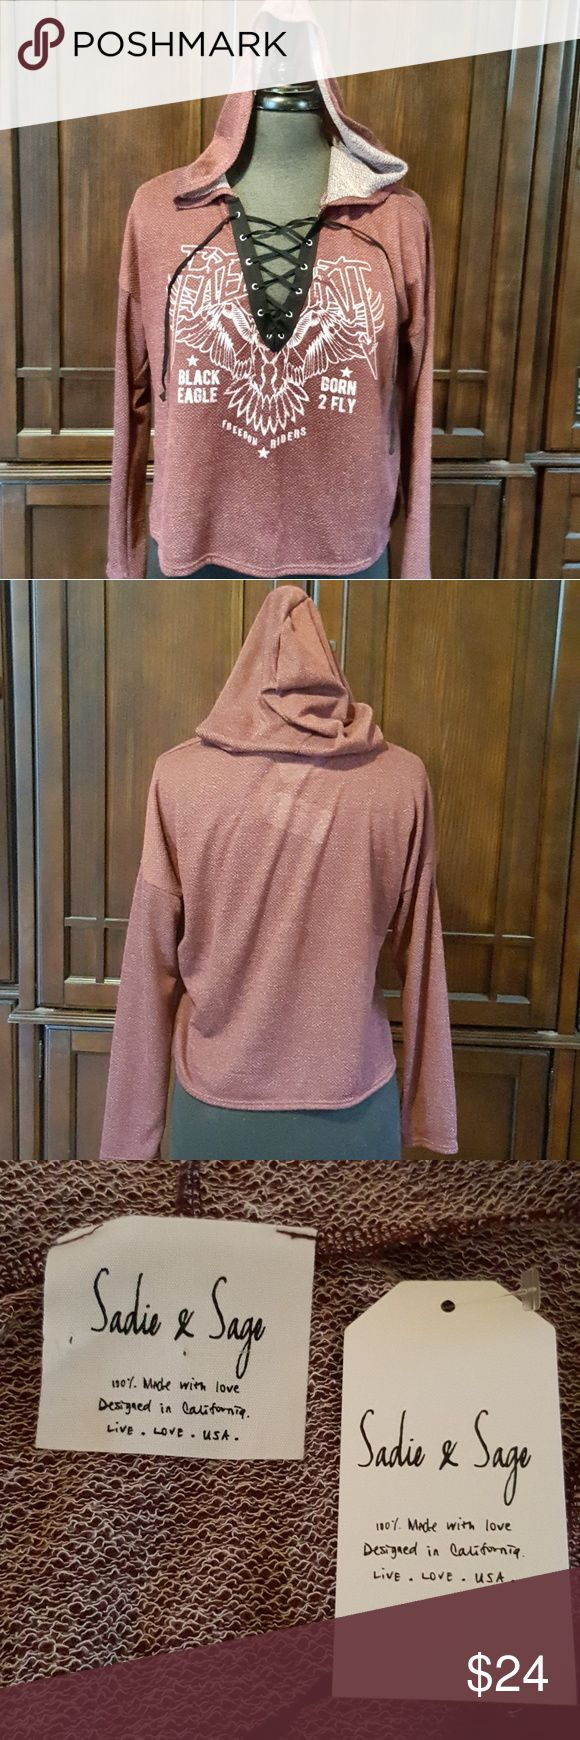 """🌷Sadie & Sage🌷NWT Lace Up Hoodie Trendy lace up style, never worn, Sadie & Sage lightweight hoodie...perfect for the fall season!!  NWT.  Size small.  Approx 20"""" chest (armpit to armpit), 19"""" length.  Burgundy in color.  Make an offer or bundle!! Sadie & Sage Sweaters"""